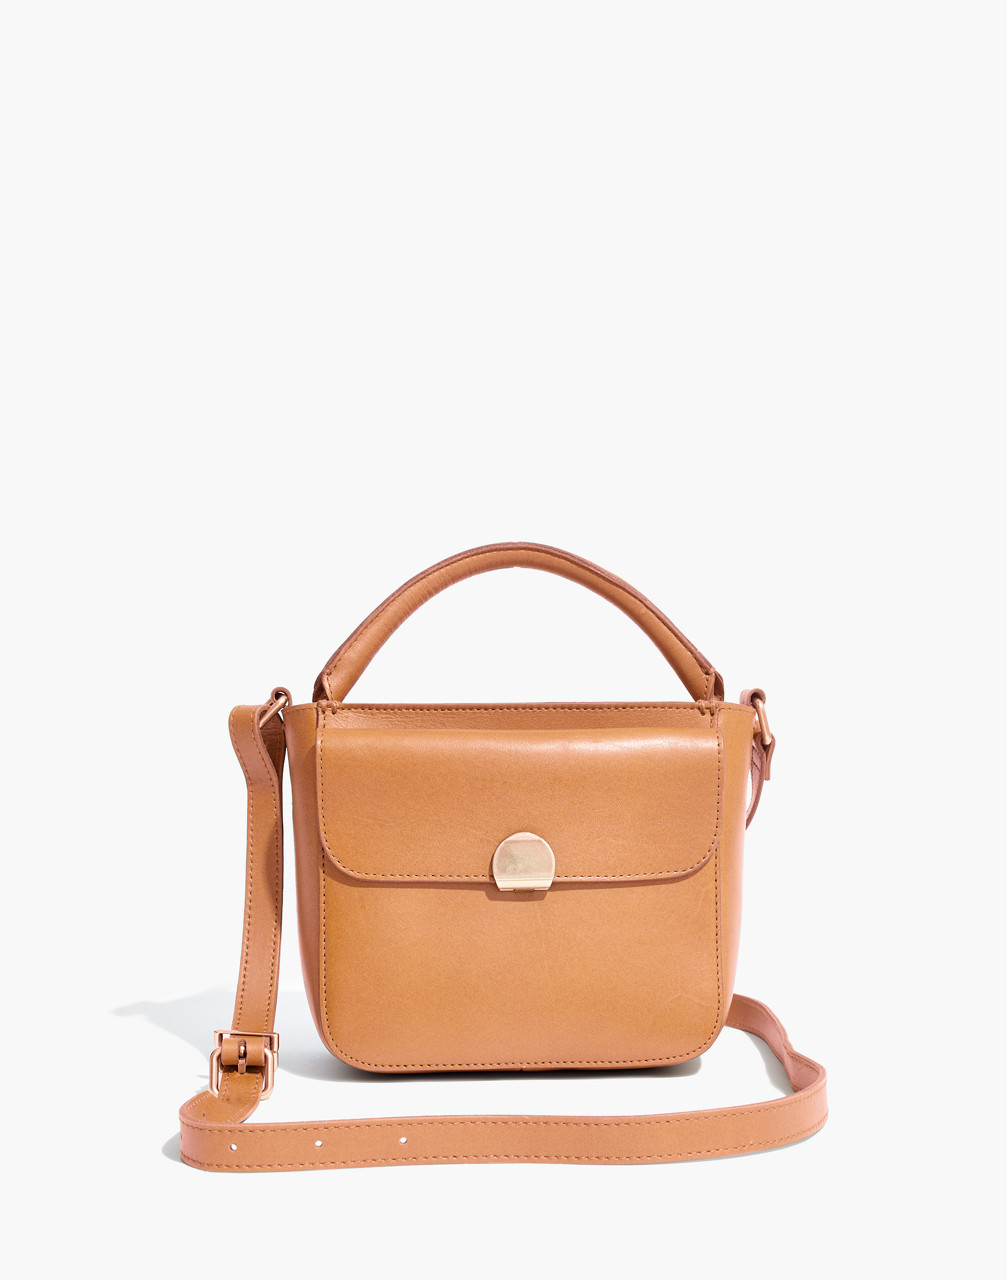 The Mini Abroad Crossbody Bag in desert camel image 1